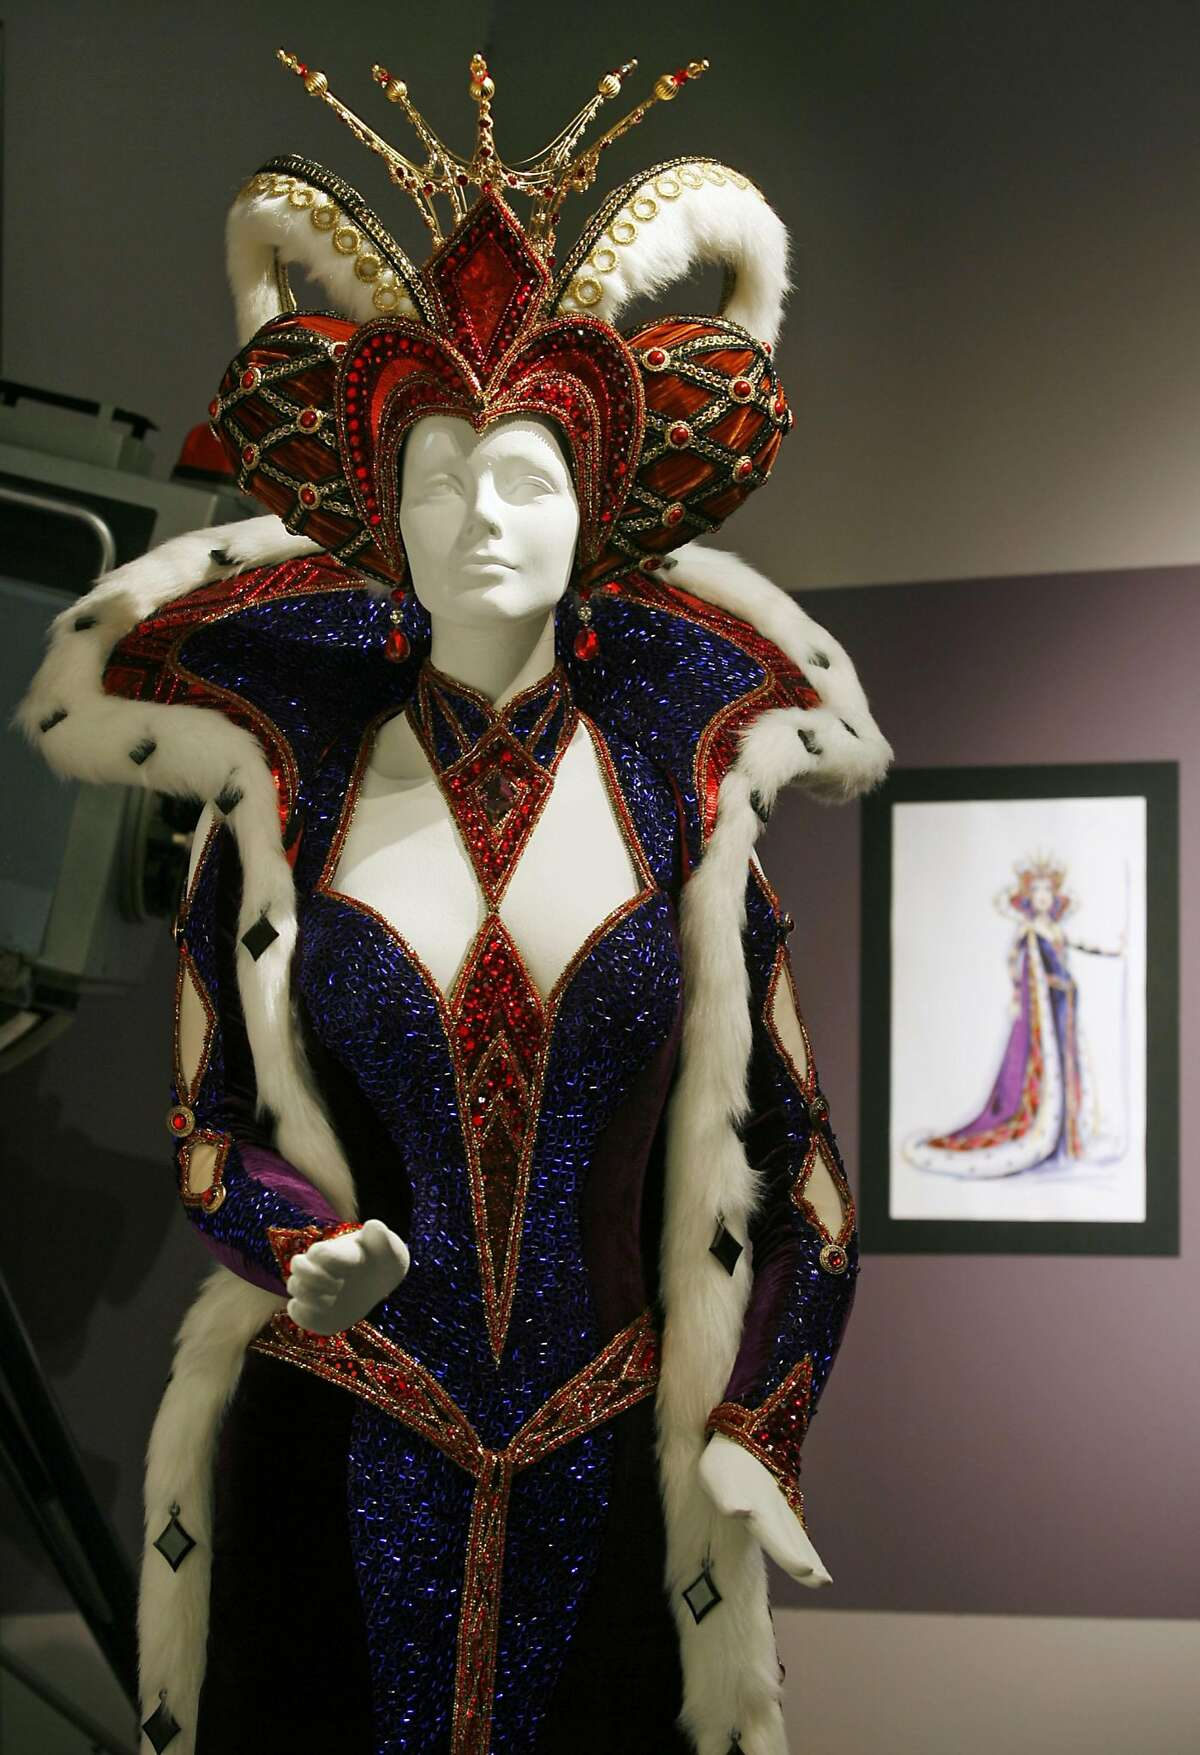 """Carol Burnett's costume, designed by Bob Mackie for the 2005 television special """"Once Upon a Mattress,"""" is on display at the Fashion Institute Of Design & Merchandising in Los Angeles, Wednesday, Aug. 2, 2006. Mackie was among those nominated for a costume design movie Emmy award for his work on the movie. Winning duds in the series costumes category as well as its movie and mini-series counterpart will be announced Aug. 19, when the creative arts Emmys are presented at the Shrine Auditorium in Los Angeles. (AP Photo/Damian Dovarganes) Ran on: 08-14-2006 Carol Burnetts costume, designed by Bob Mackie for the 2005 TV special Once Upon a Mattress, is on display in Los Angeles."""